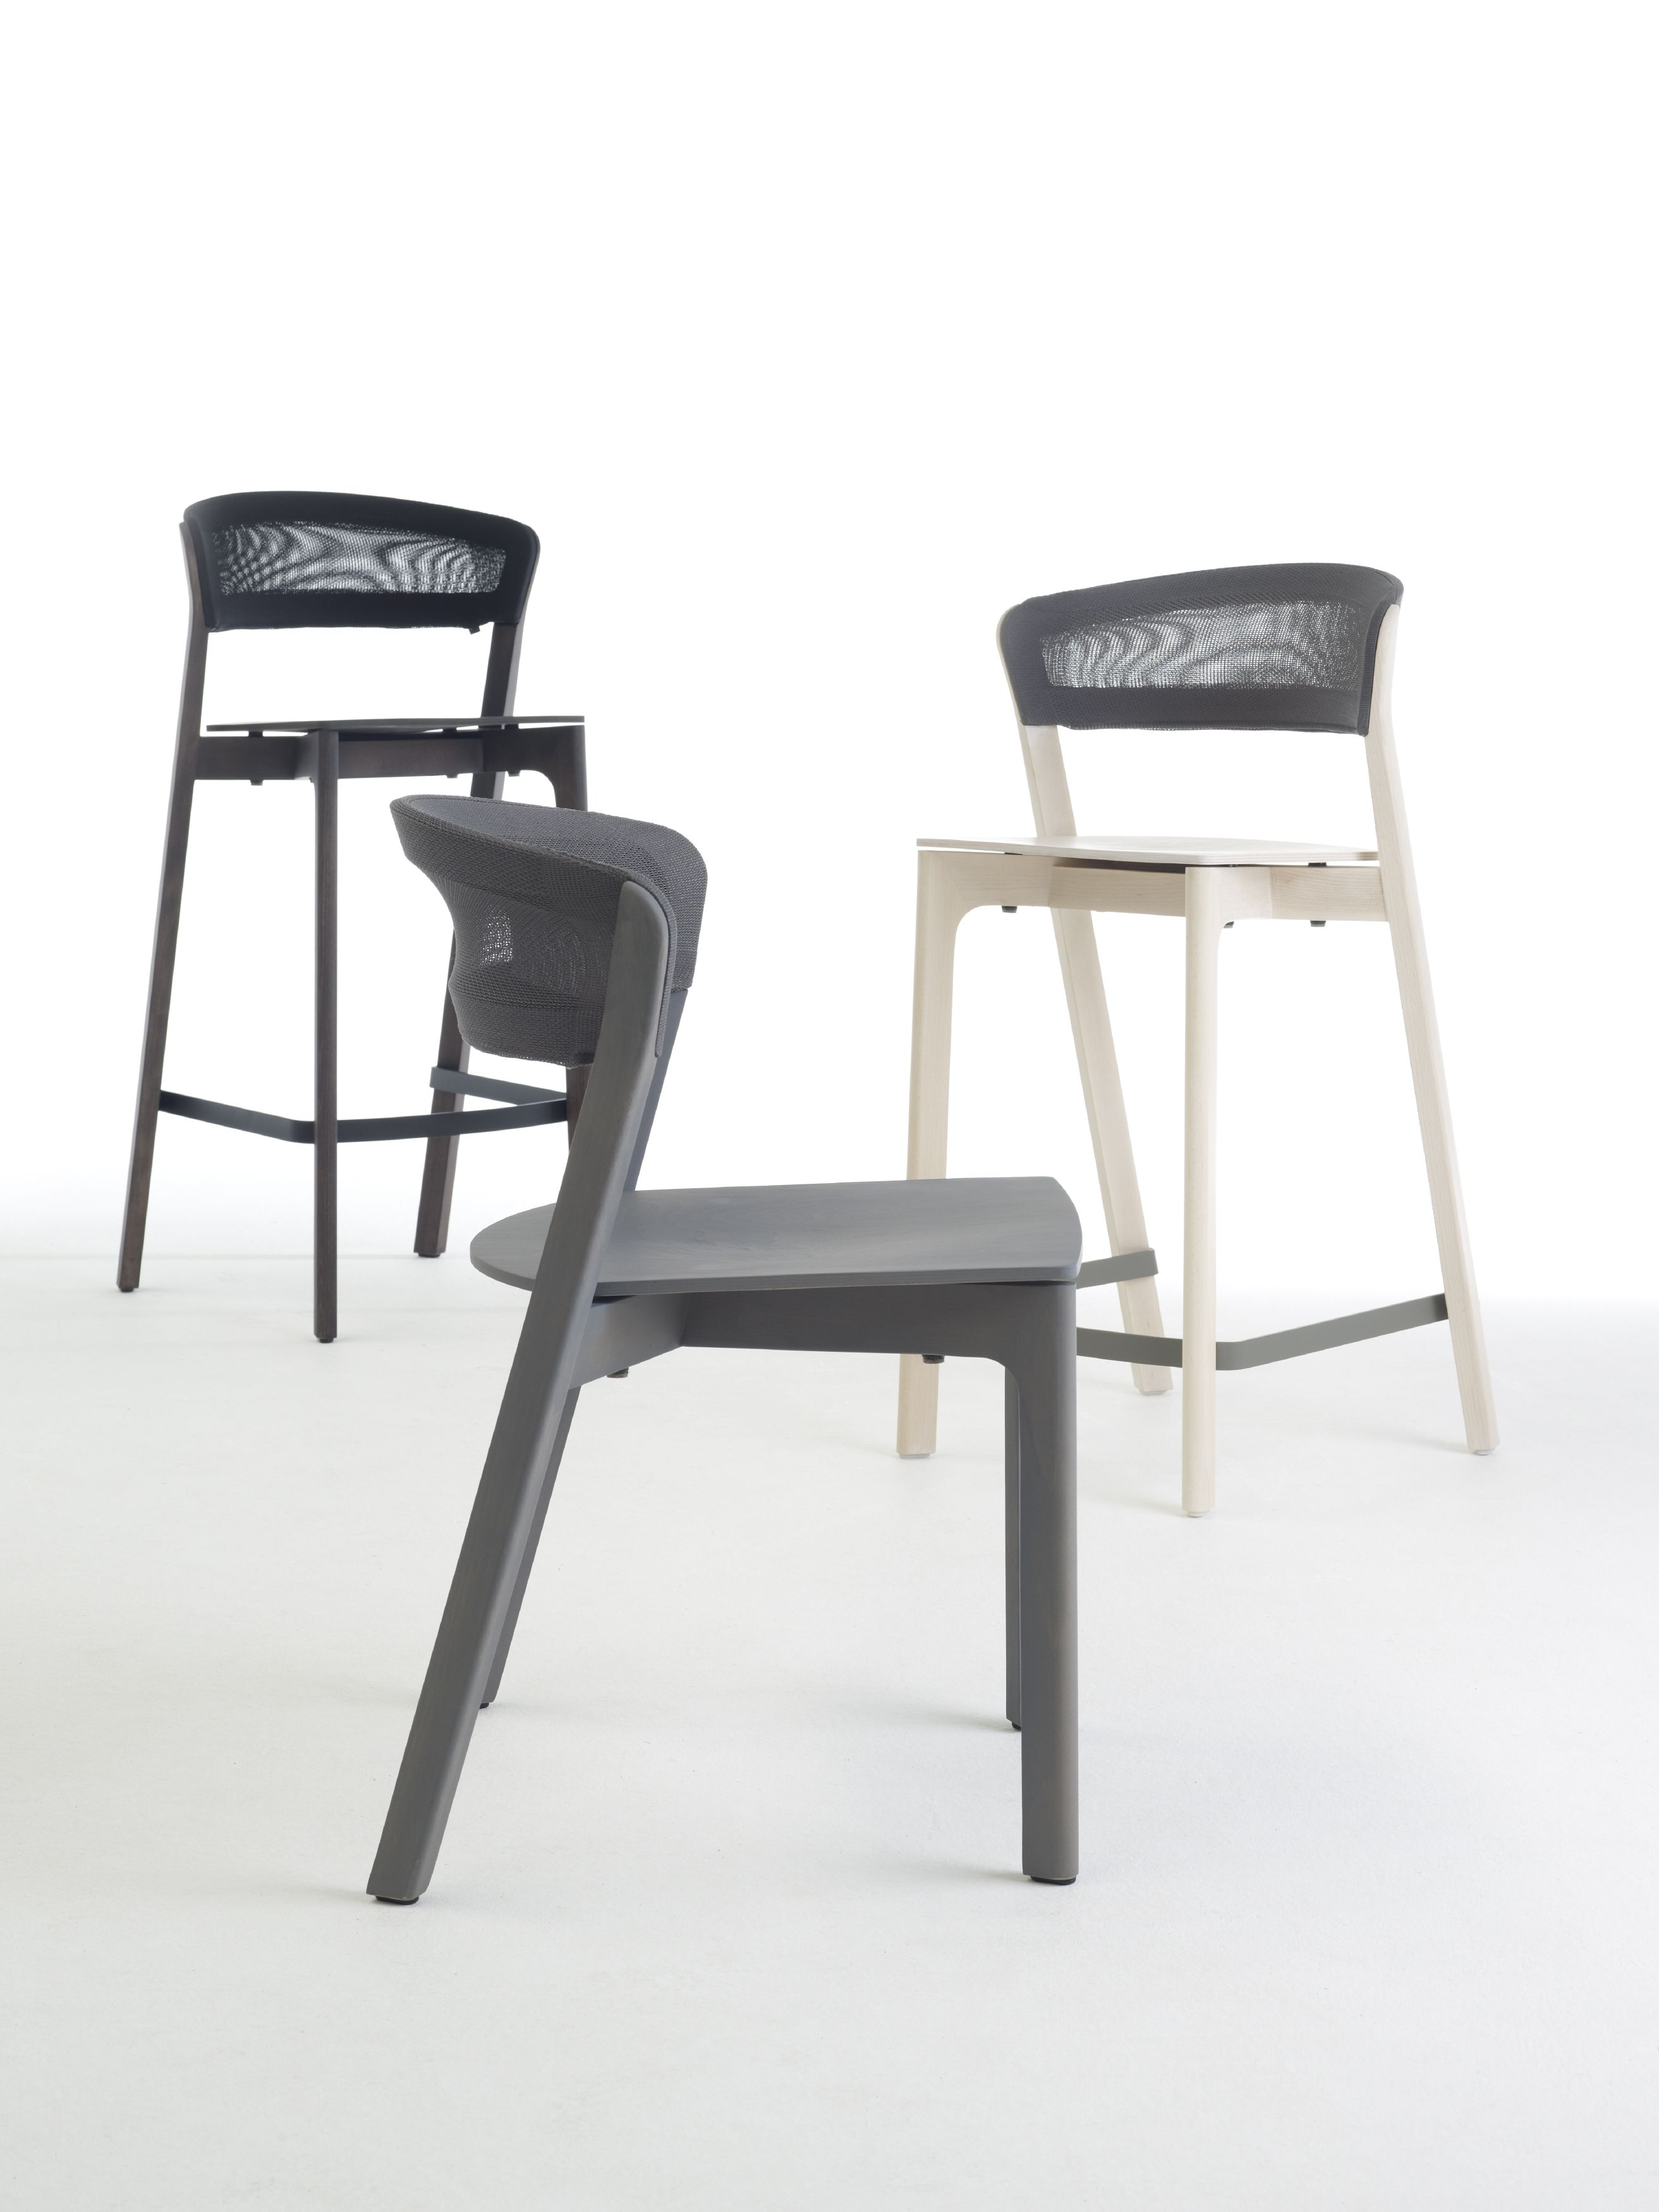 Restaurant chair cafe chair from Arco designer Jonathan Prestwich – Grahl Chair